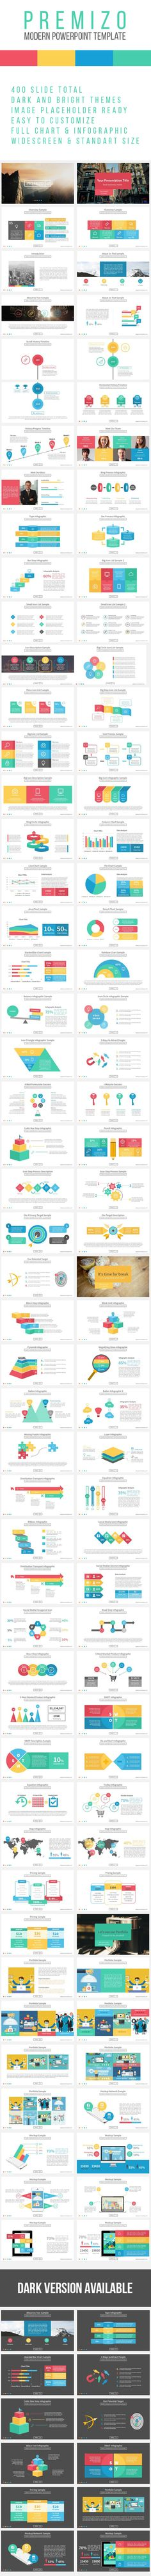 Premizo Modern Powerpoint Template (PowerPoint Templates)